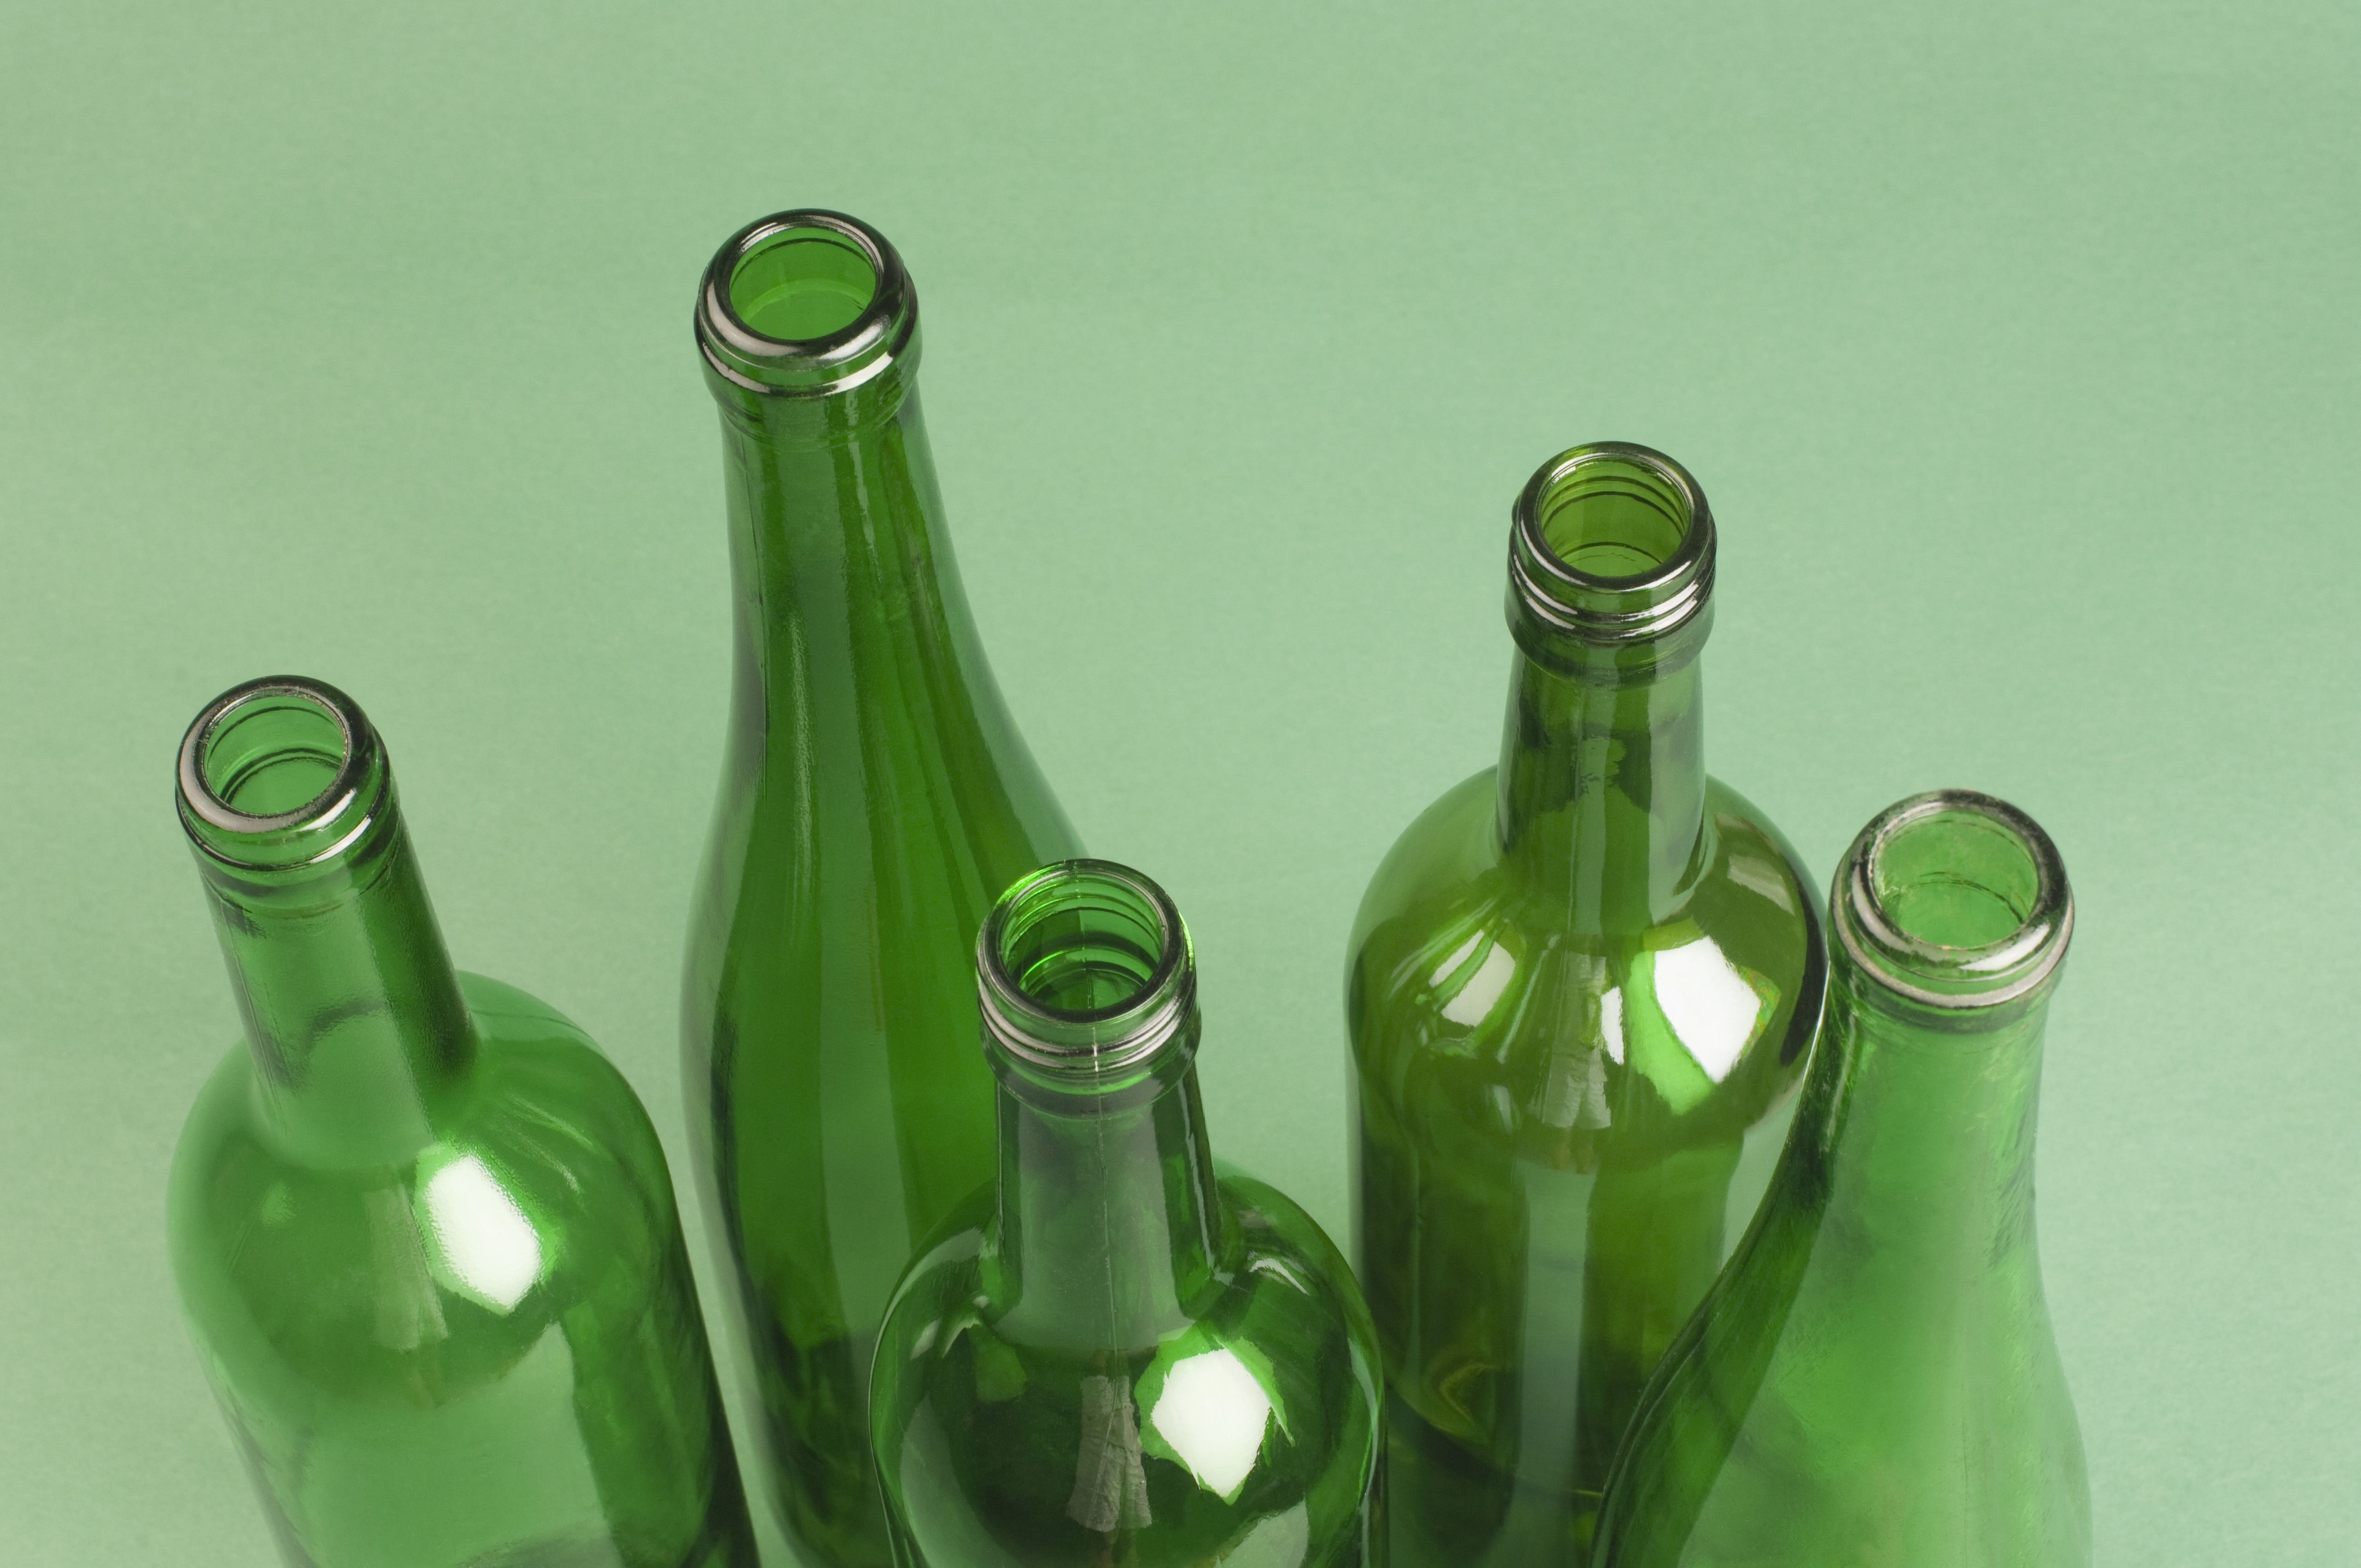 Close-up of empty bottles